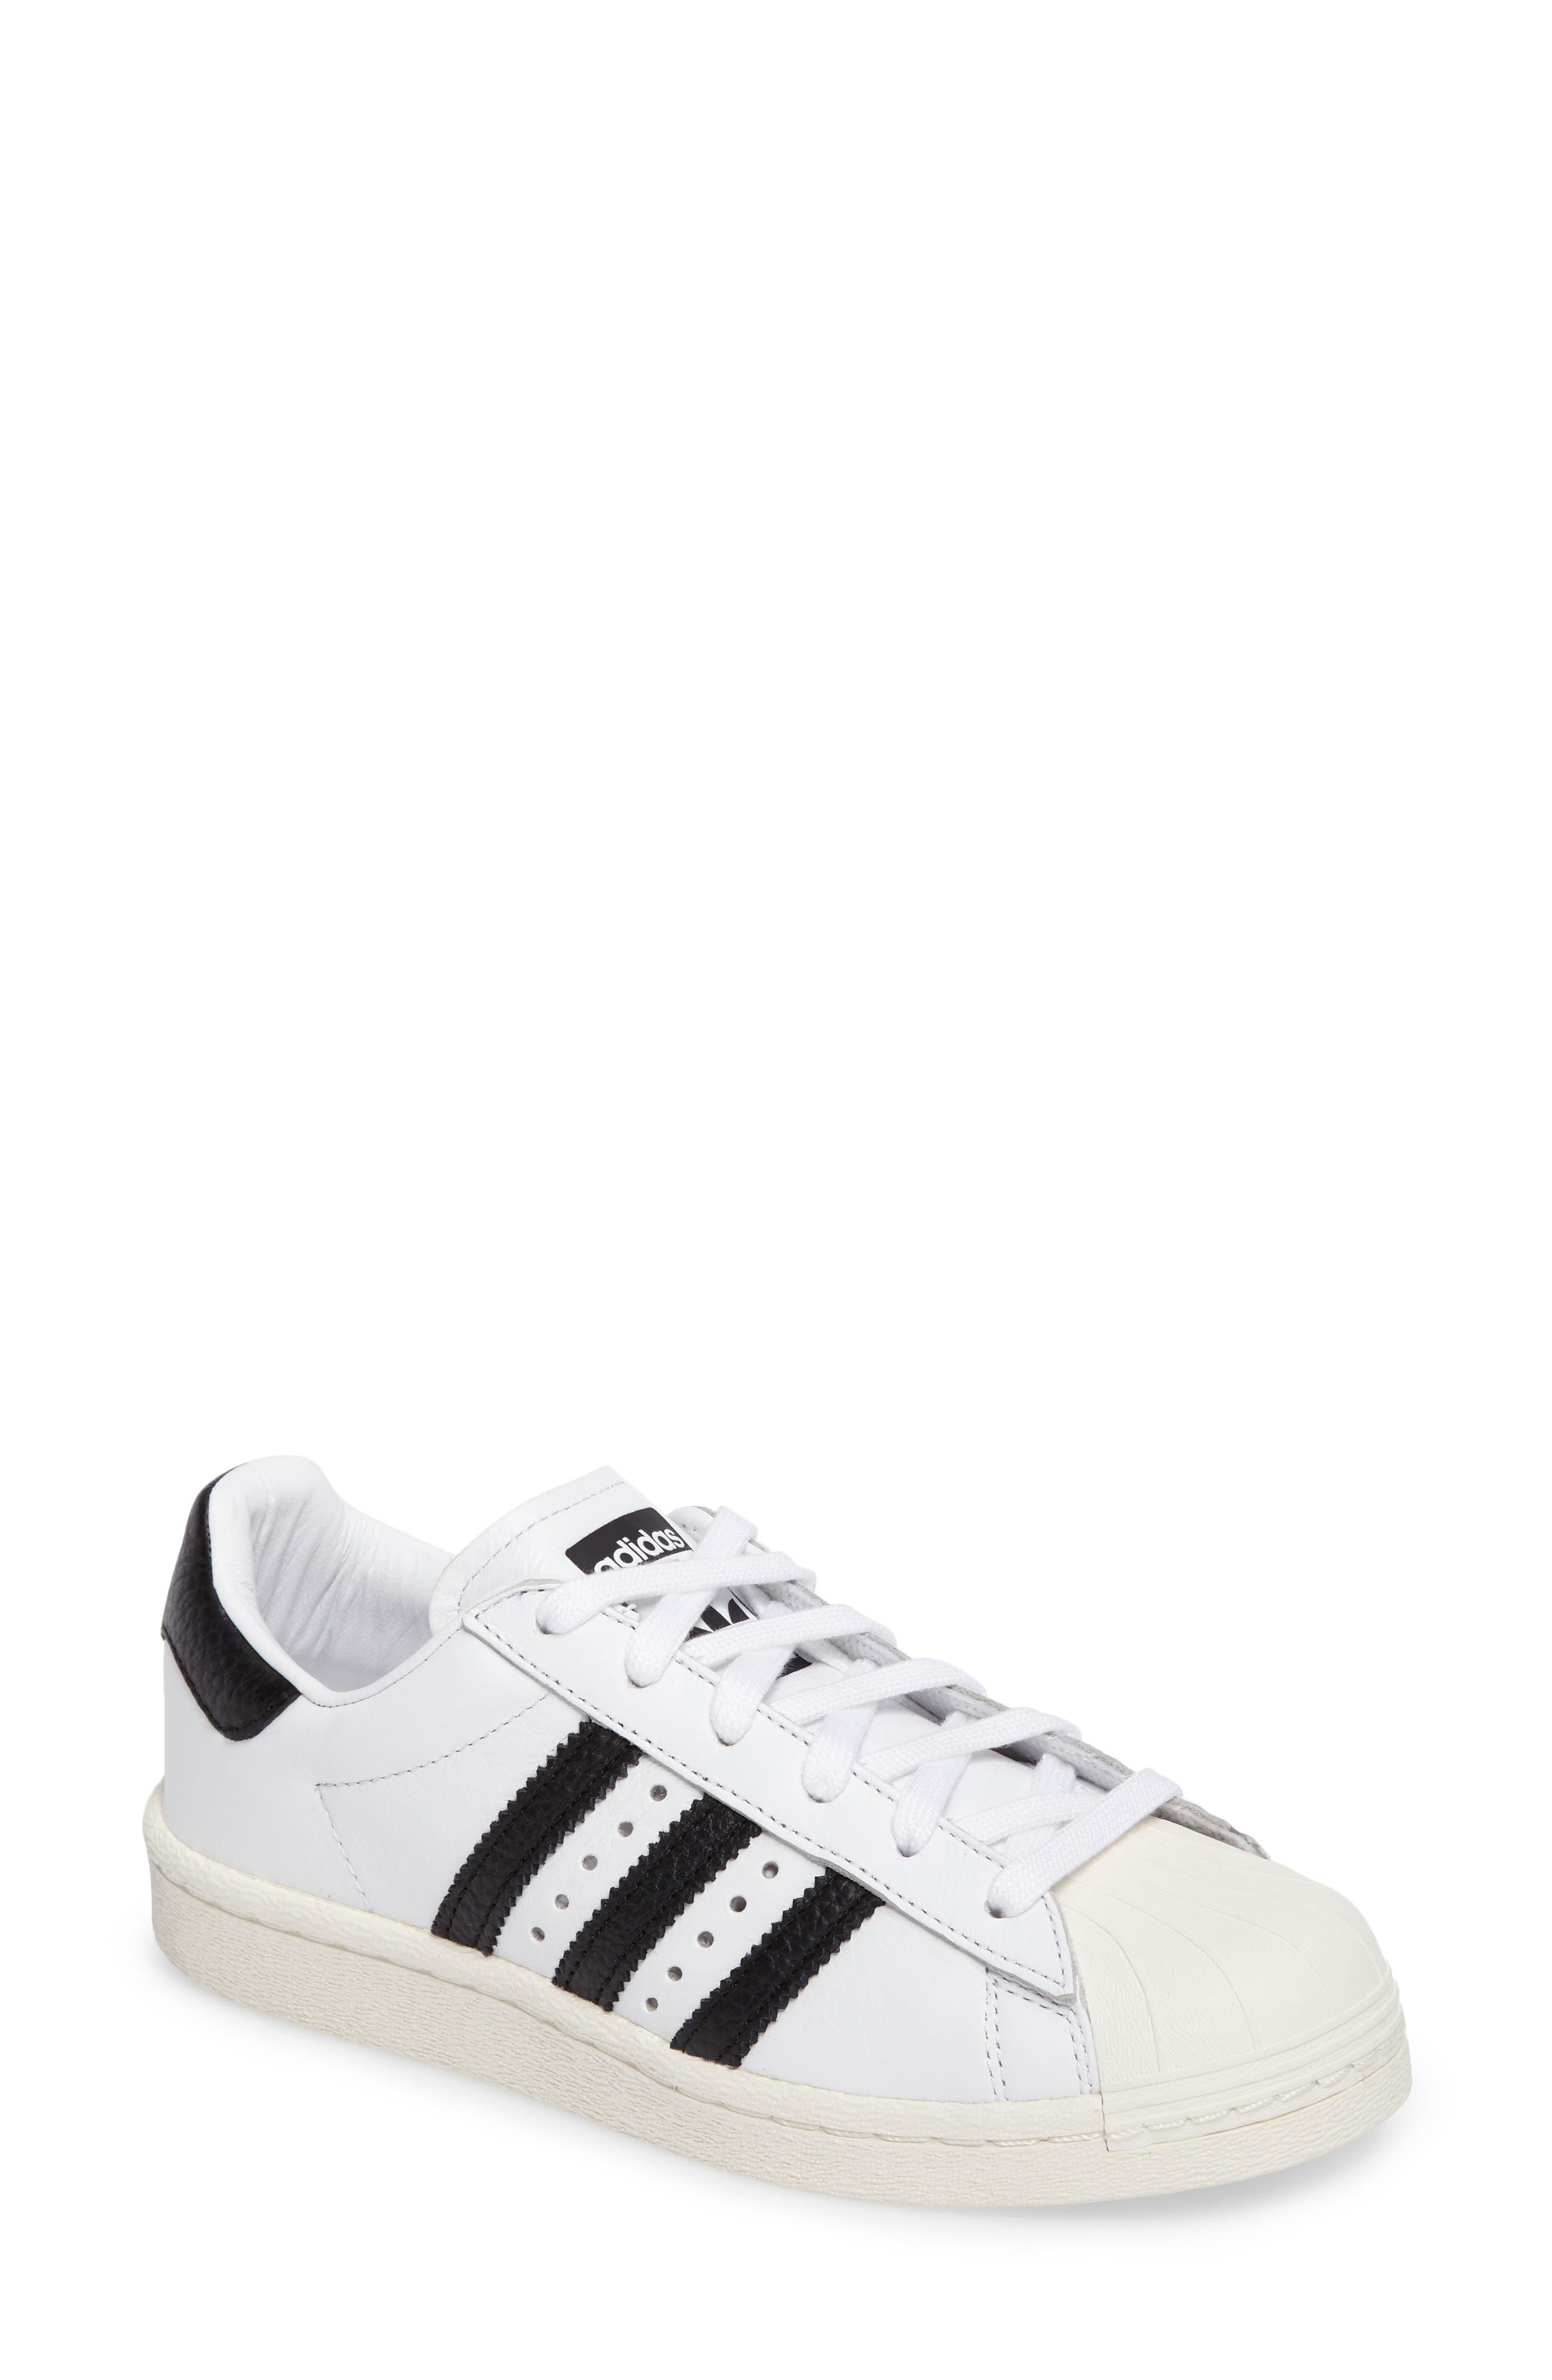 Alternate Image 1 Selected - adidas Superstar Boost Sneaker (Women)